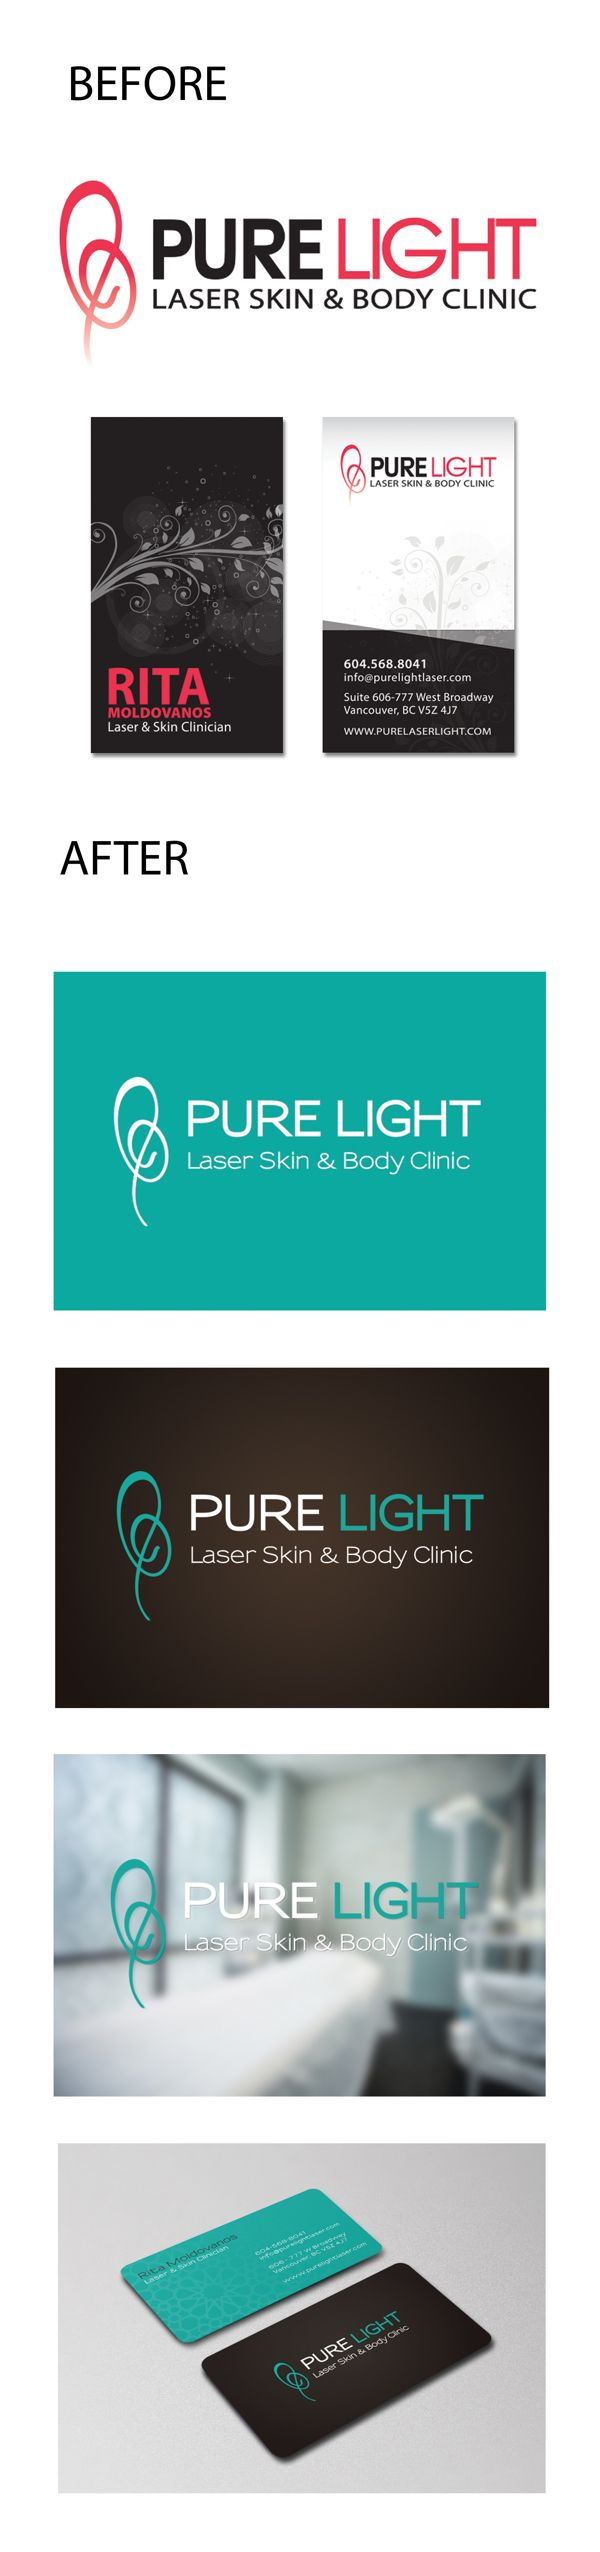 Client: Pure Light Laser Clinic, Vancouver BC. Business Card design and Logo update (keeping existing logomark).